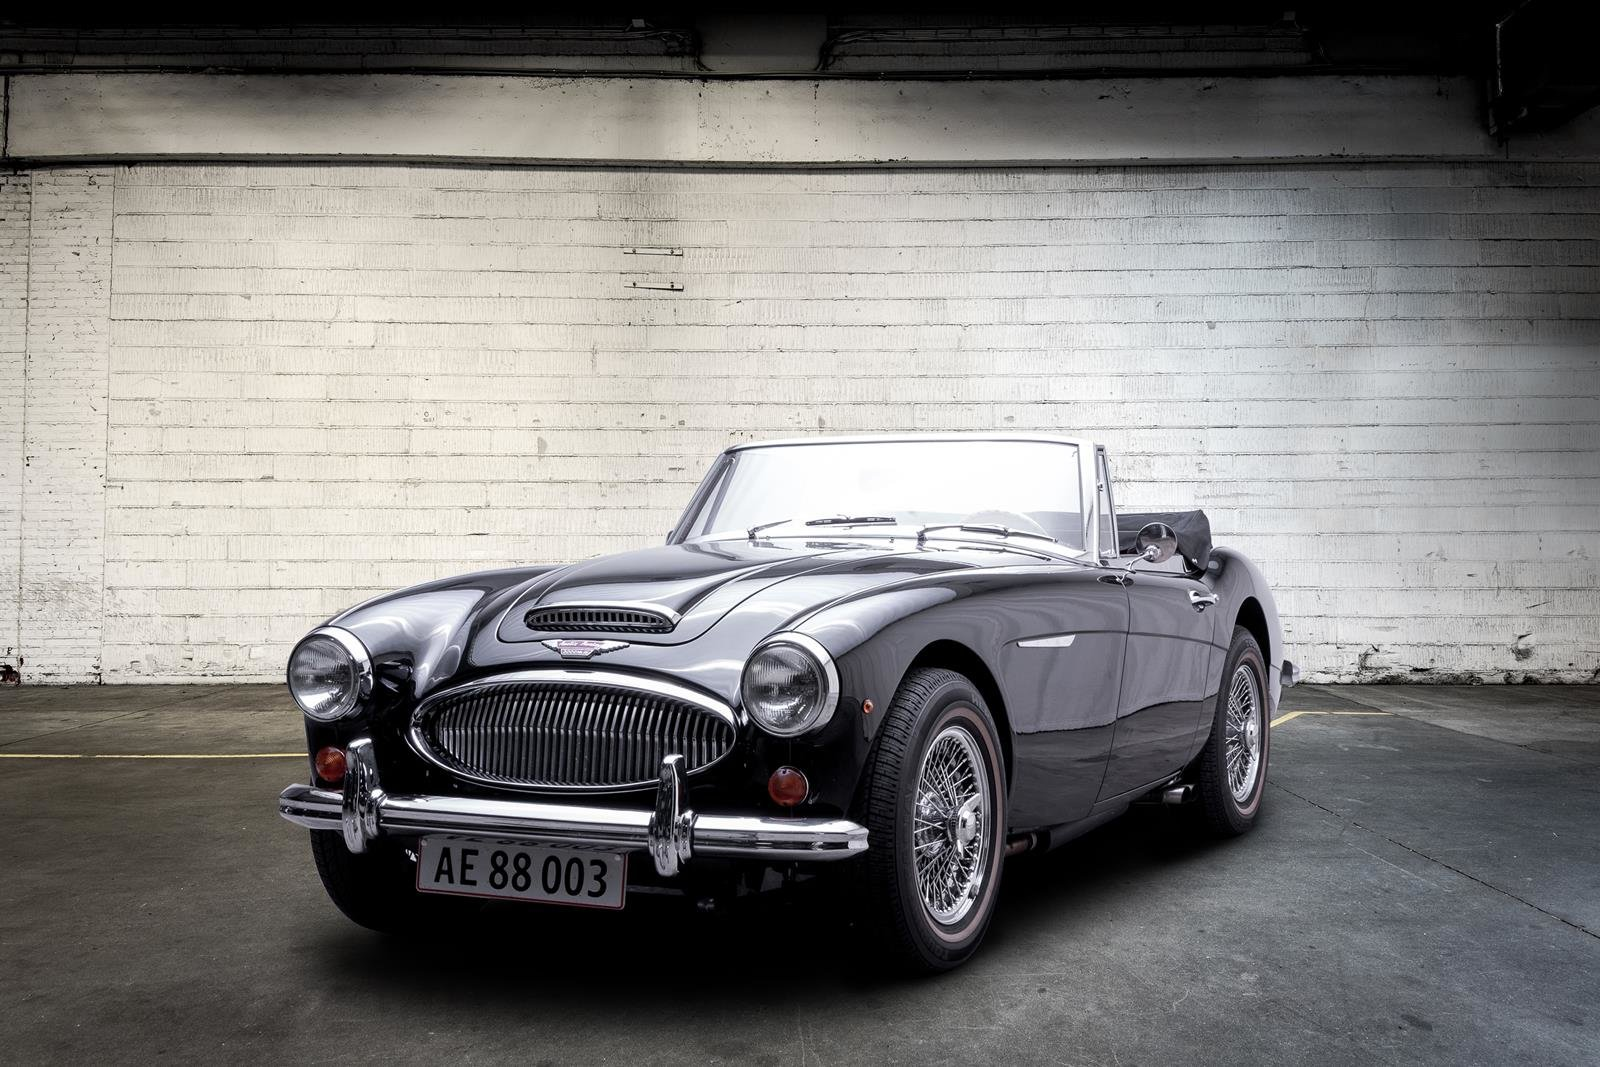 1966 Austin Healey 3000 MK 3  For Sale (picture 1 of 6)